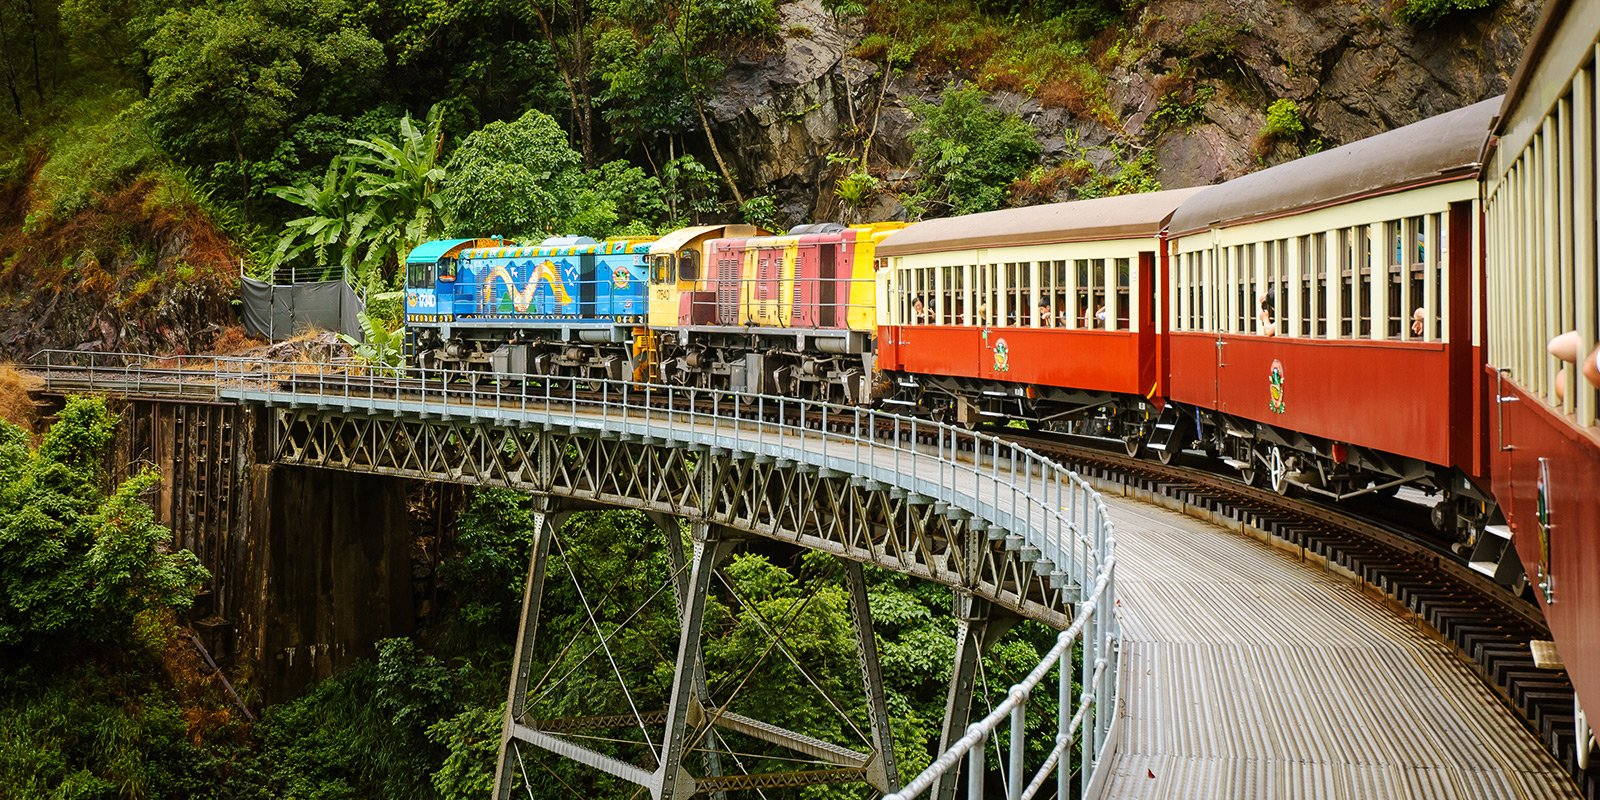 How to take a journey through the tropical forest on an old-fashioned train in Cairns